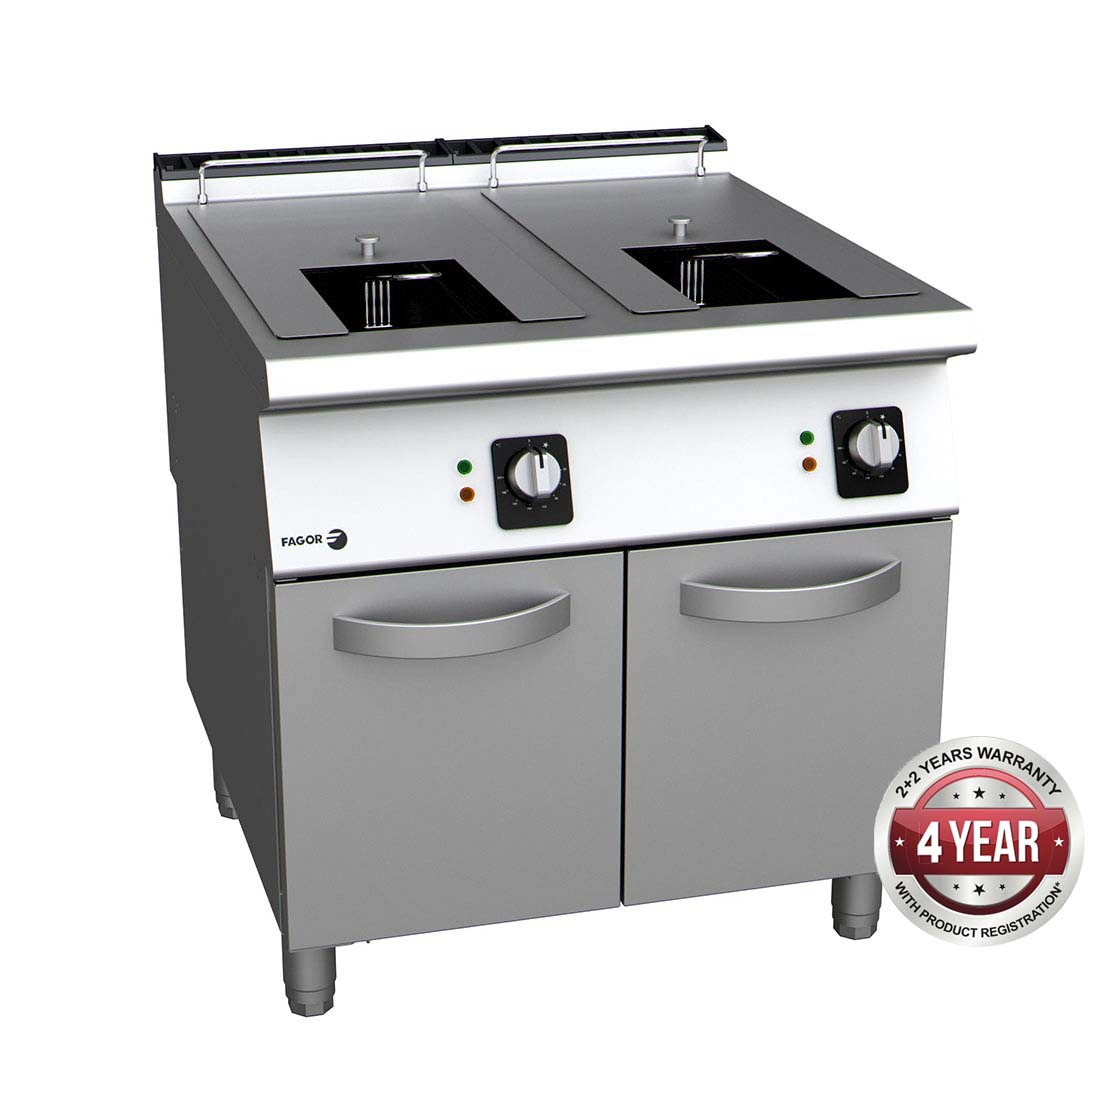 Fagor 900 Series Deep Fat Fryer - F-G9221